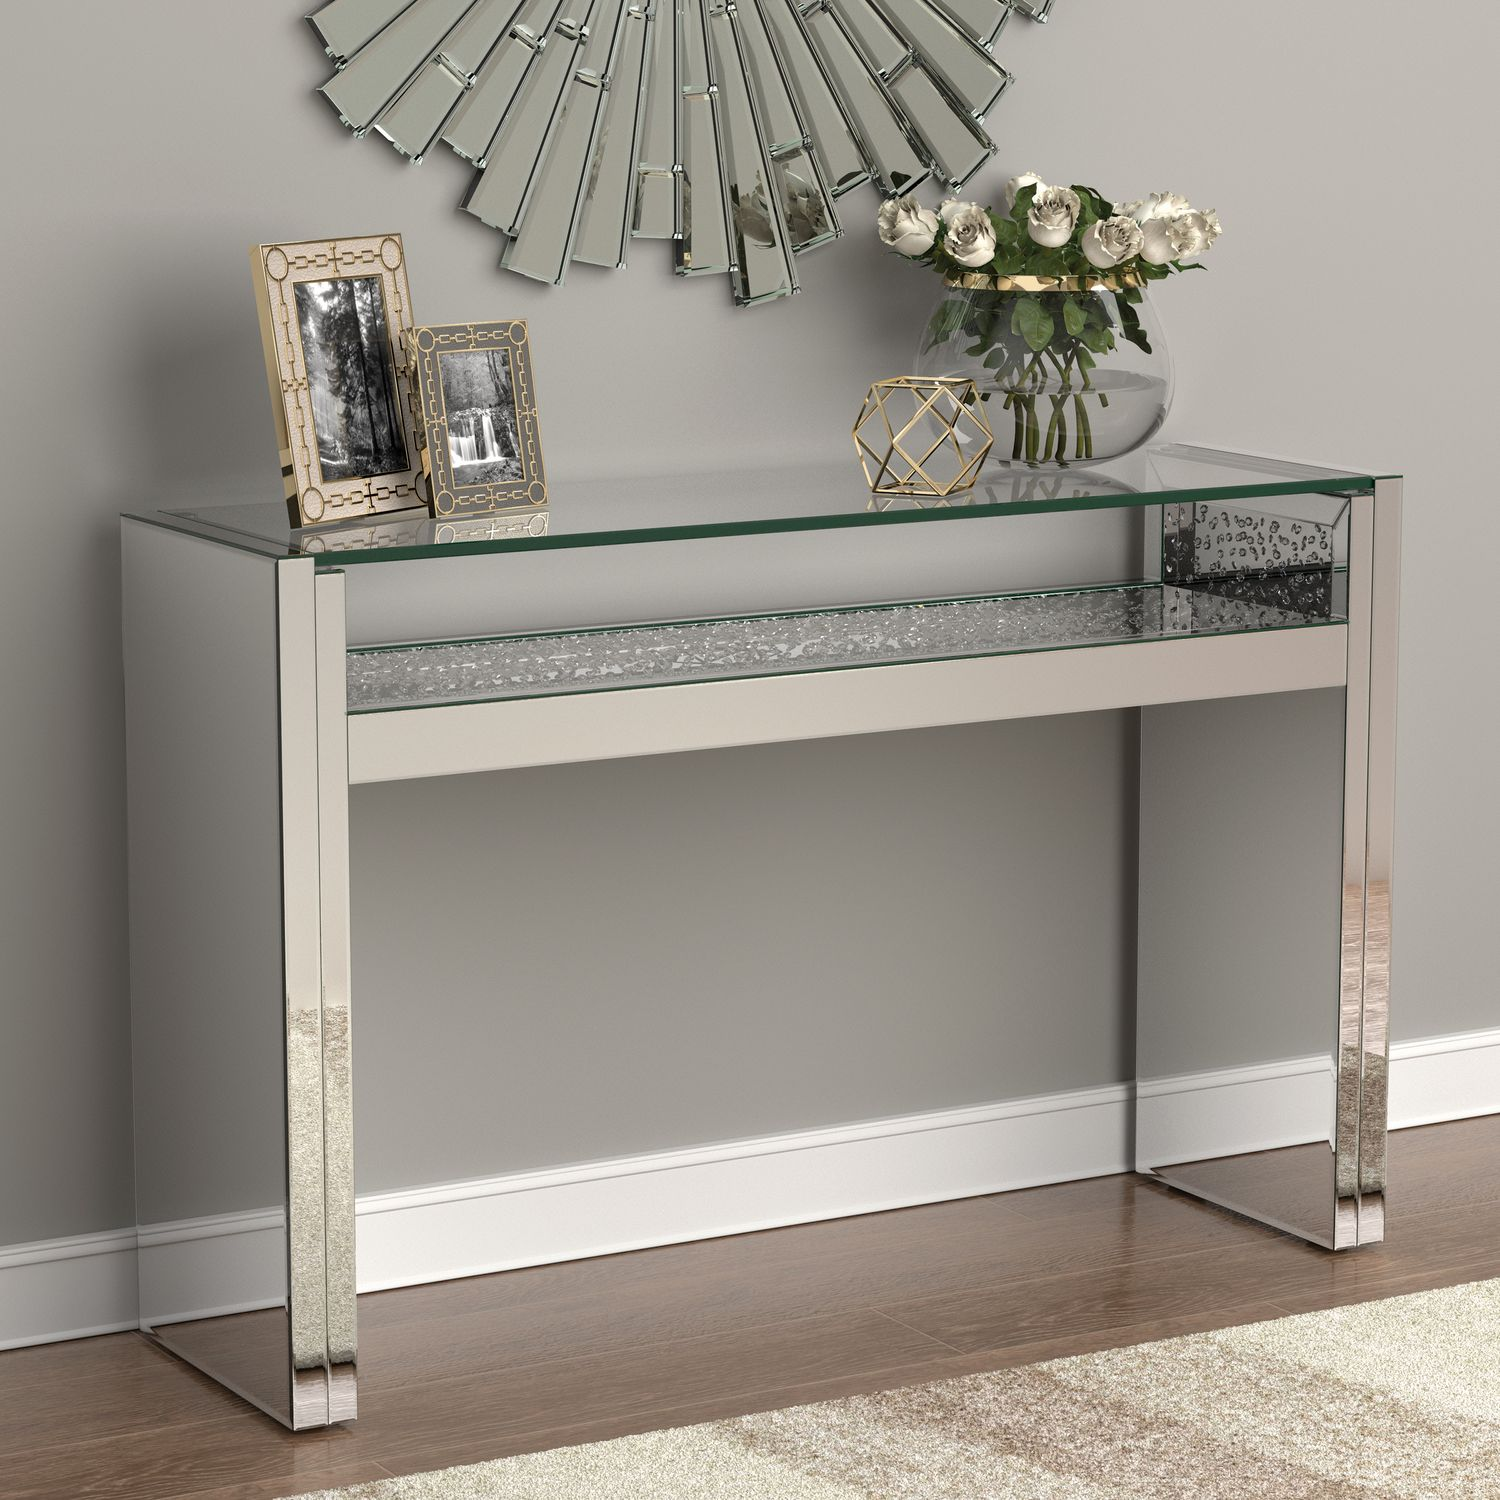 Cs766 Console Table In 2020 Contemporary Console Table Mirrored